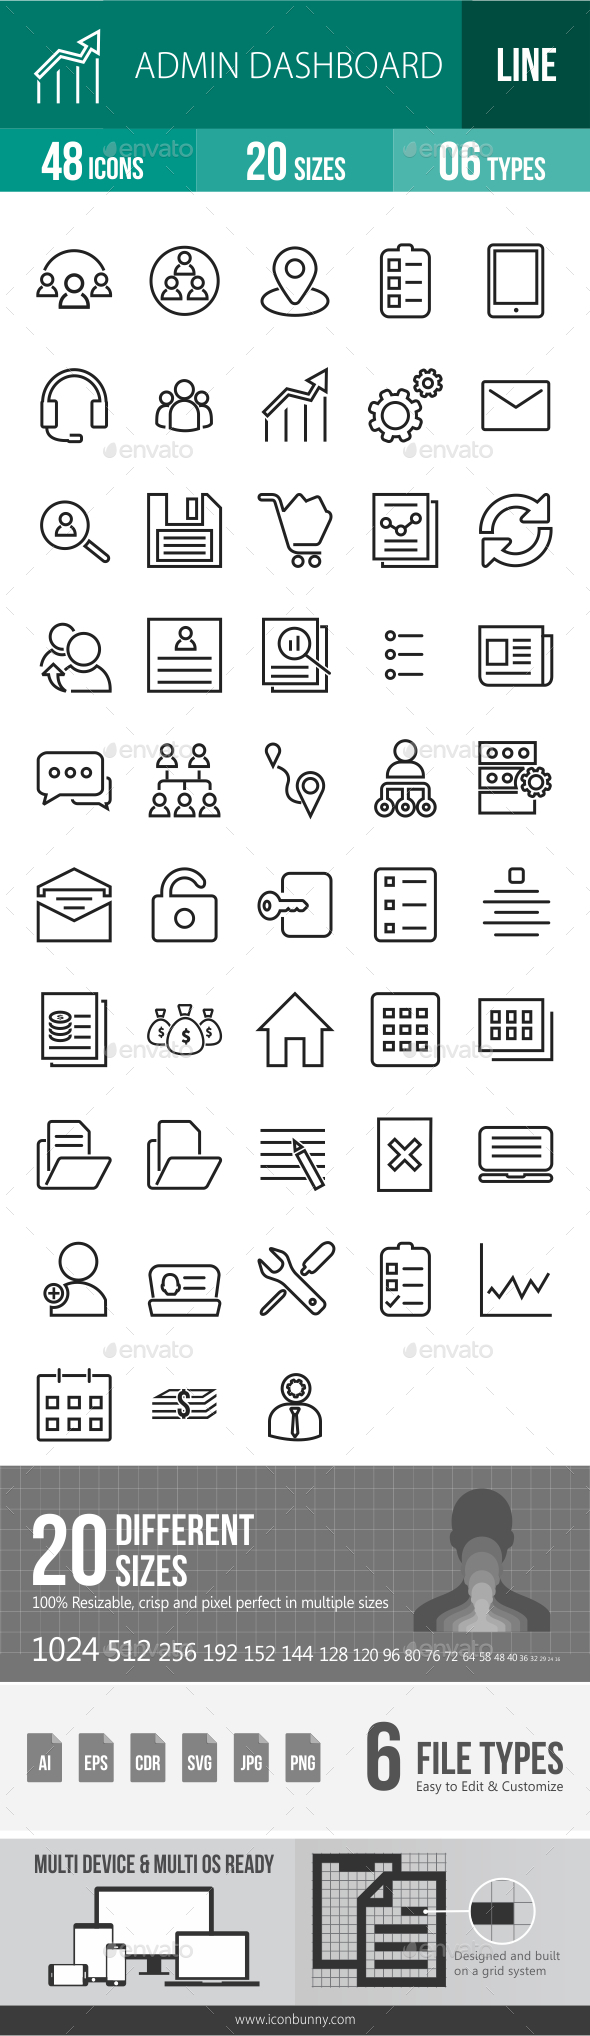 Admin Dashboard Line Icons